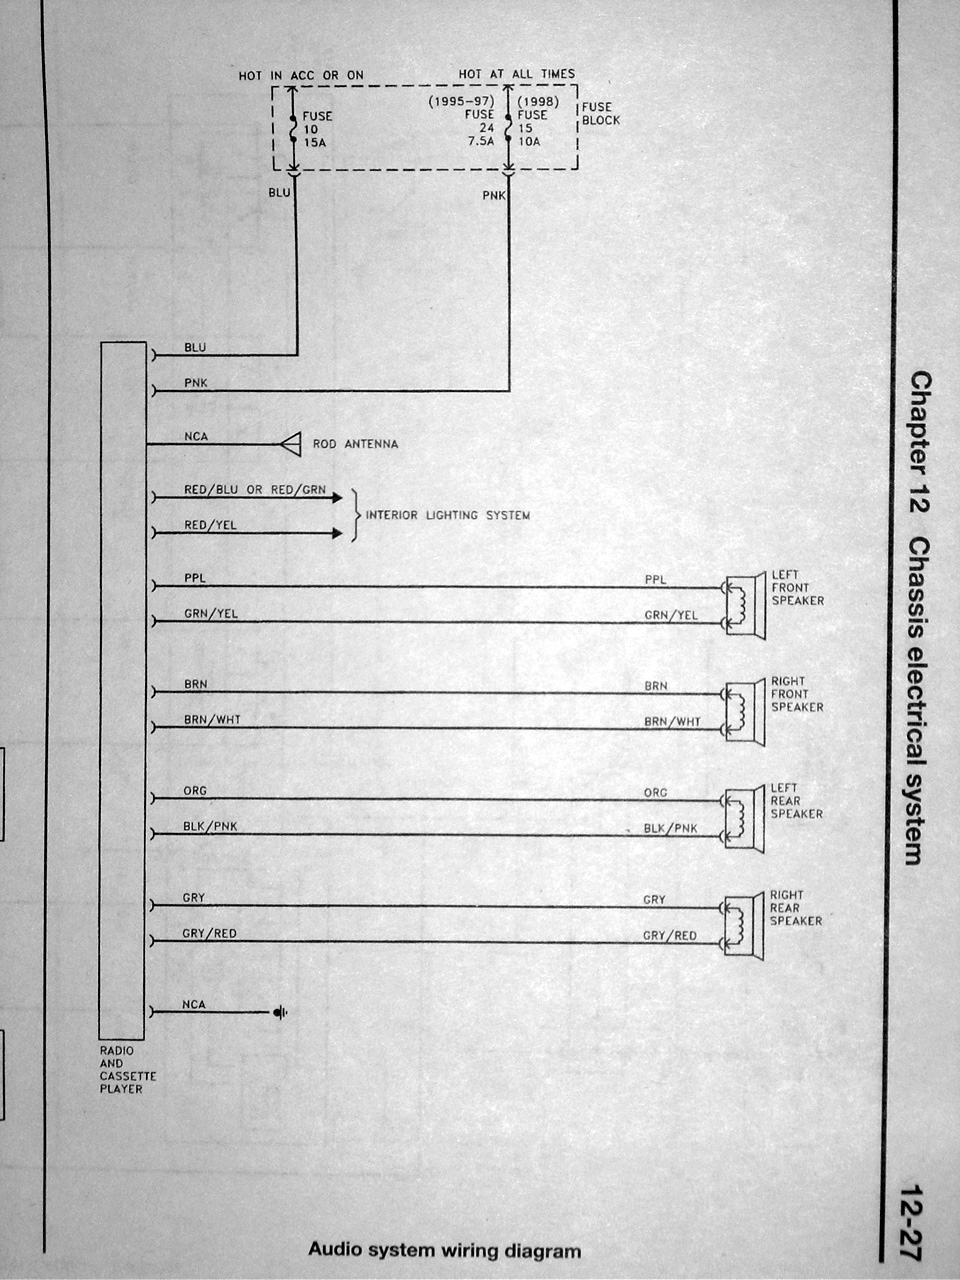 1994 Maxima Automatic Transmission Wiring Diagram Great Design Of 95 Subaru Legacy Headlight Thread Useful Info Nissan Forum Rh Nissanforums Com 2003 Mazda 3 Diagrams